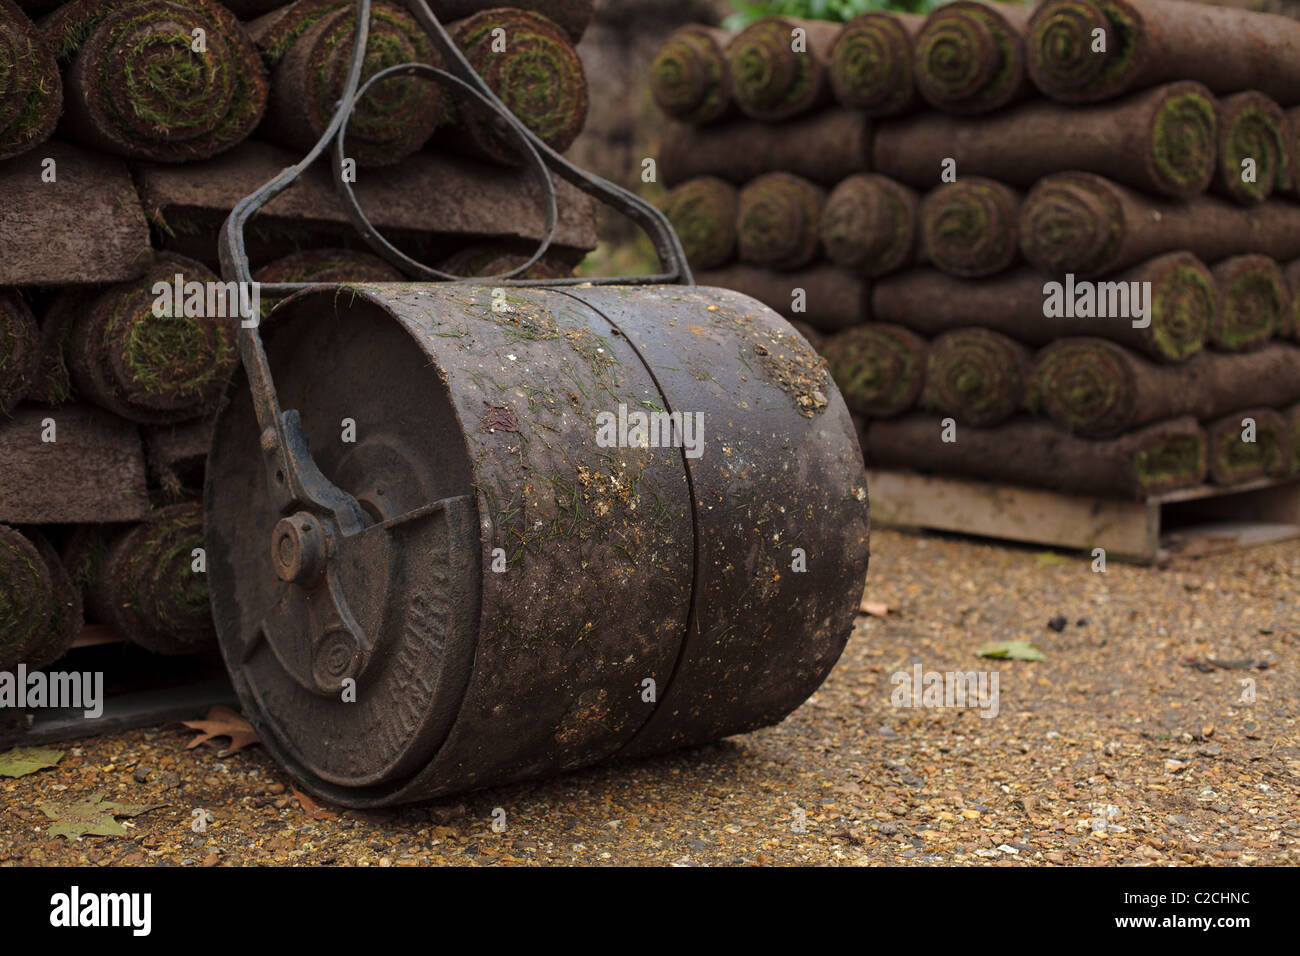 A grass roller and rolls of instant lawn on pallets. - Stock Image